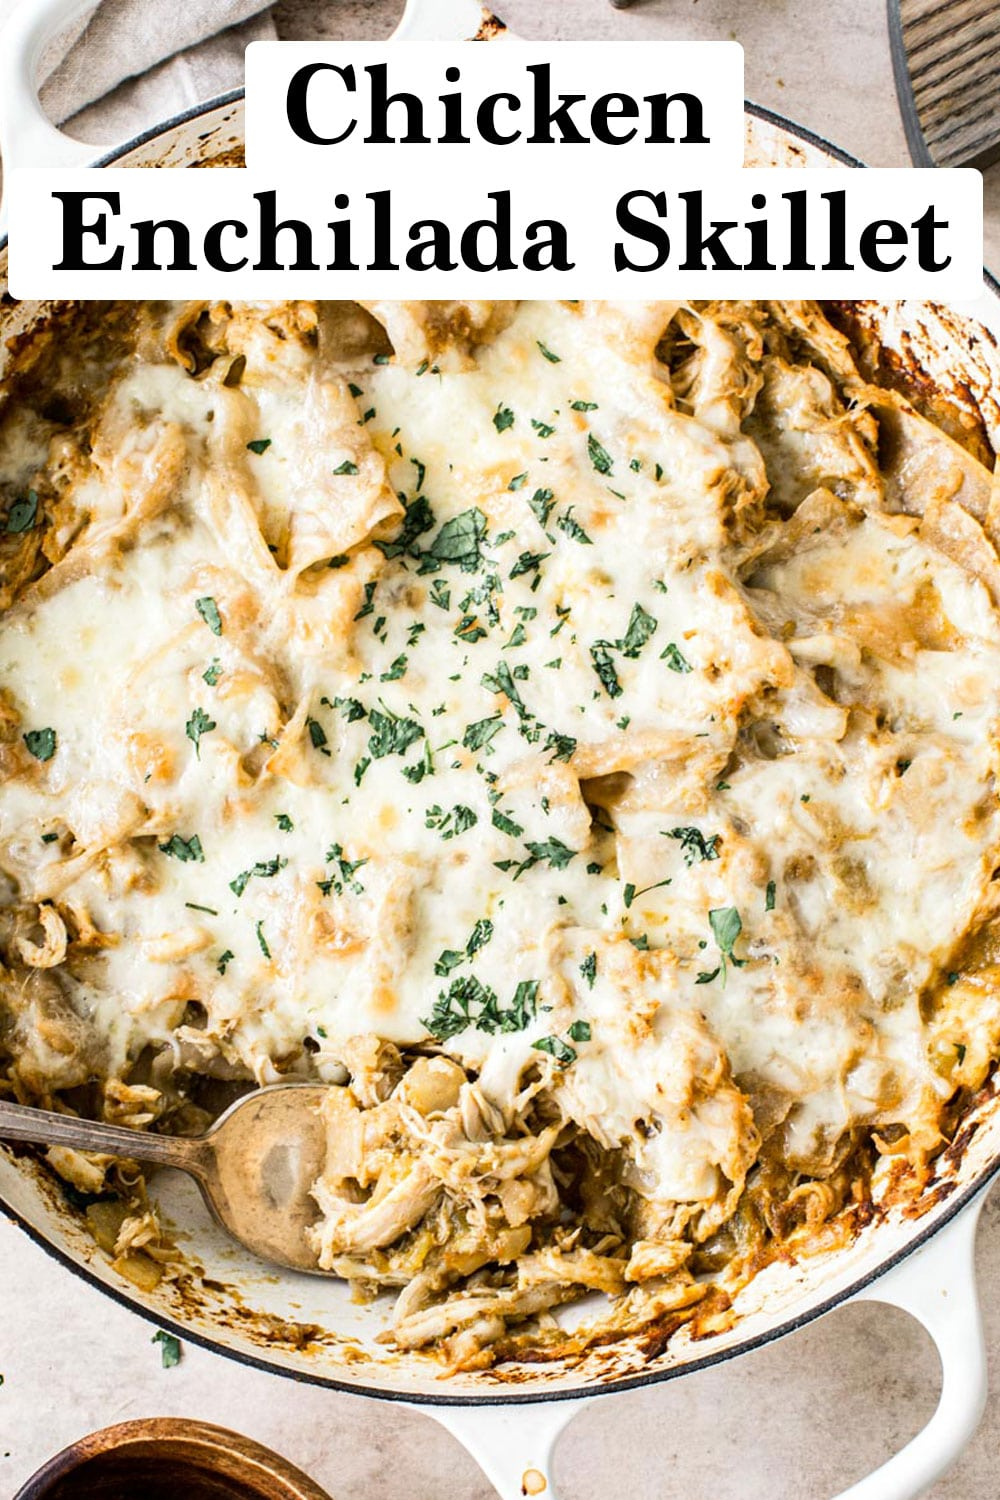 Chicken enchilada skillet topped with cheese and fresh cilantro in a white skillet.